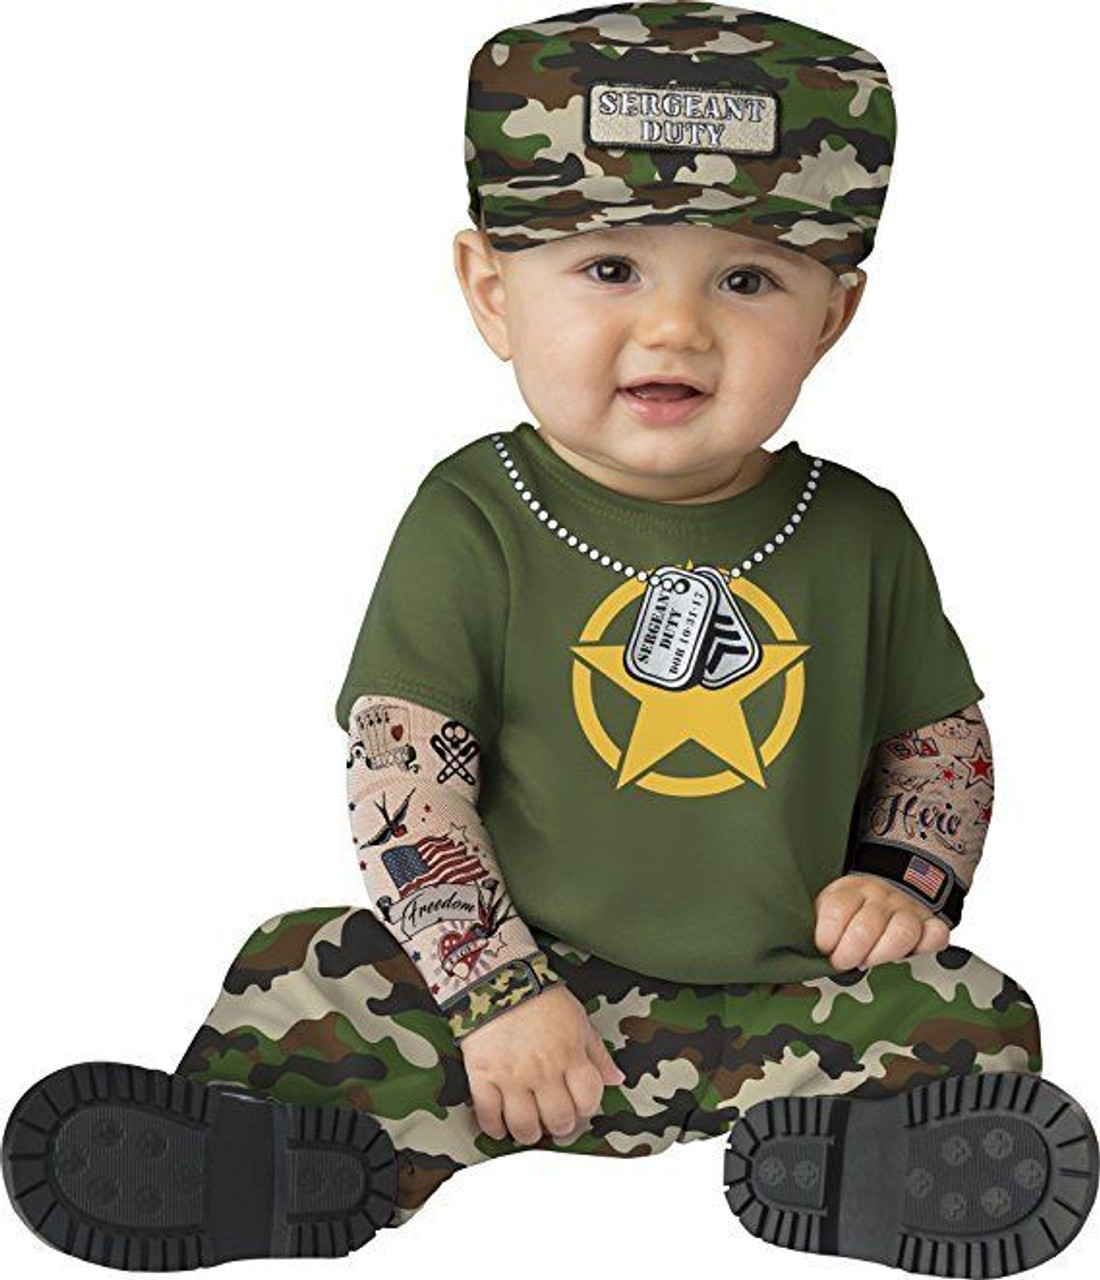 Incharacter Sergeant Duty US Army Hero Flag Infant Baby Halloween Costume 16071  sc 1 st  Fearless Apparel & Incharacter Sergeant Duty US Army Hero Flag Infant Baby Halloween ...